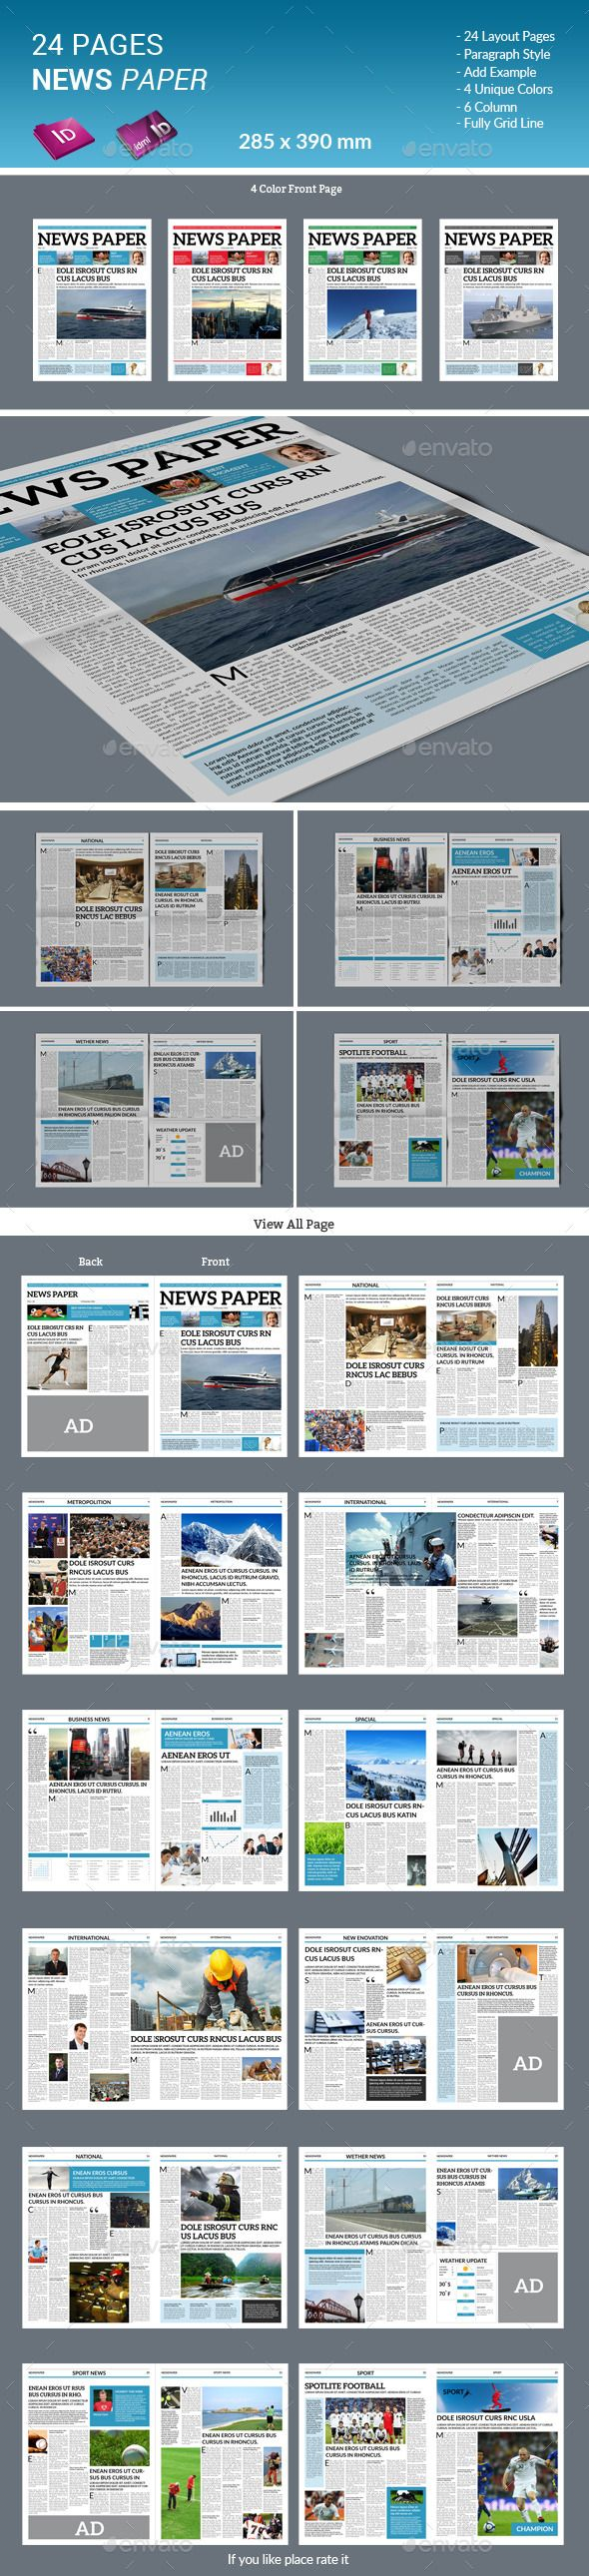 24 Pages Newspaper - Newsletters Print Templates Download here : https://graphicriver.net/item/24-pages-newspaper/12693975?s_rank=209&ref=Al-fatih